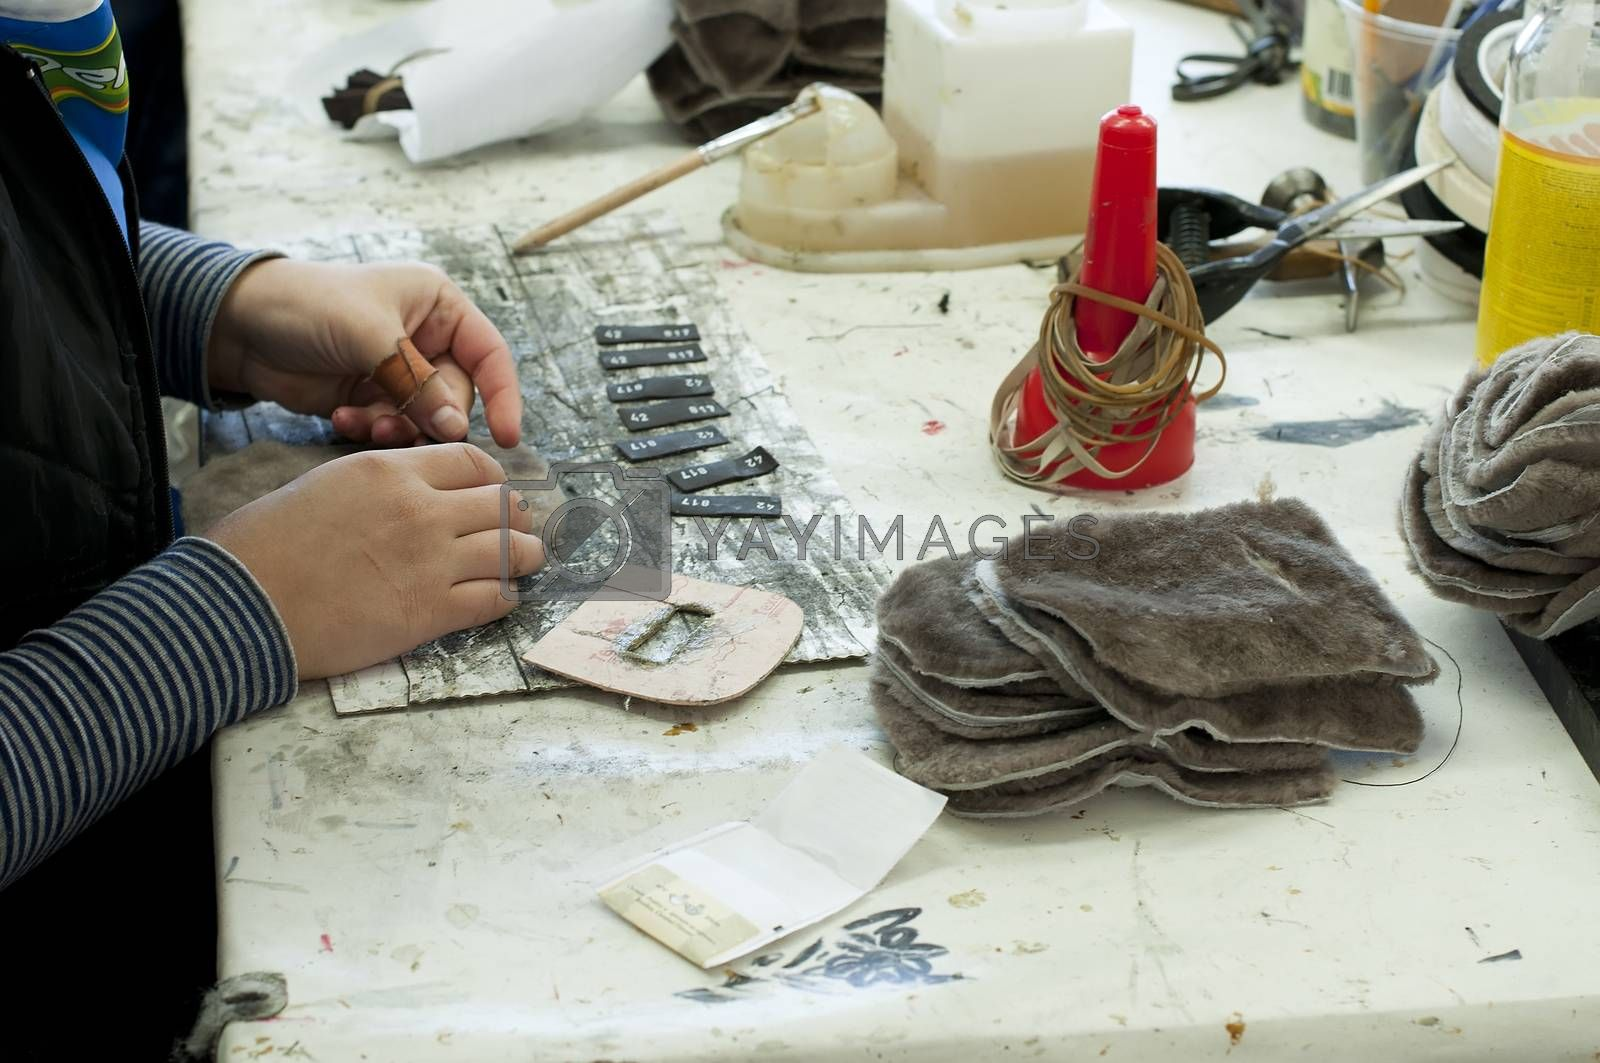 Handmade manufacture of footwear.Cropping of logos for shoes